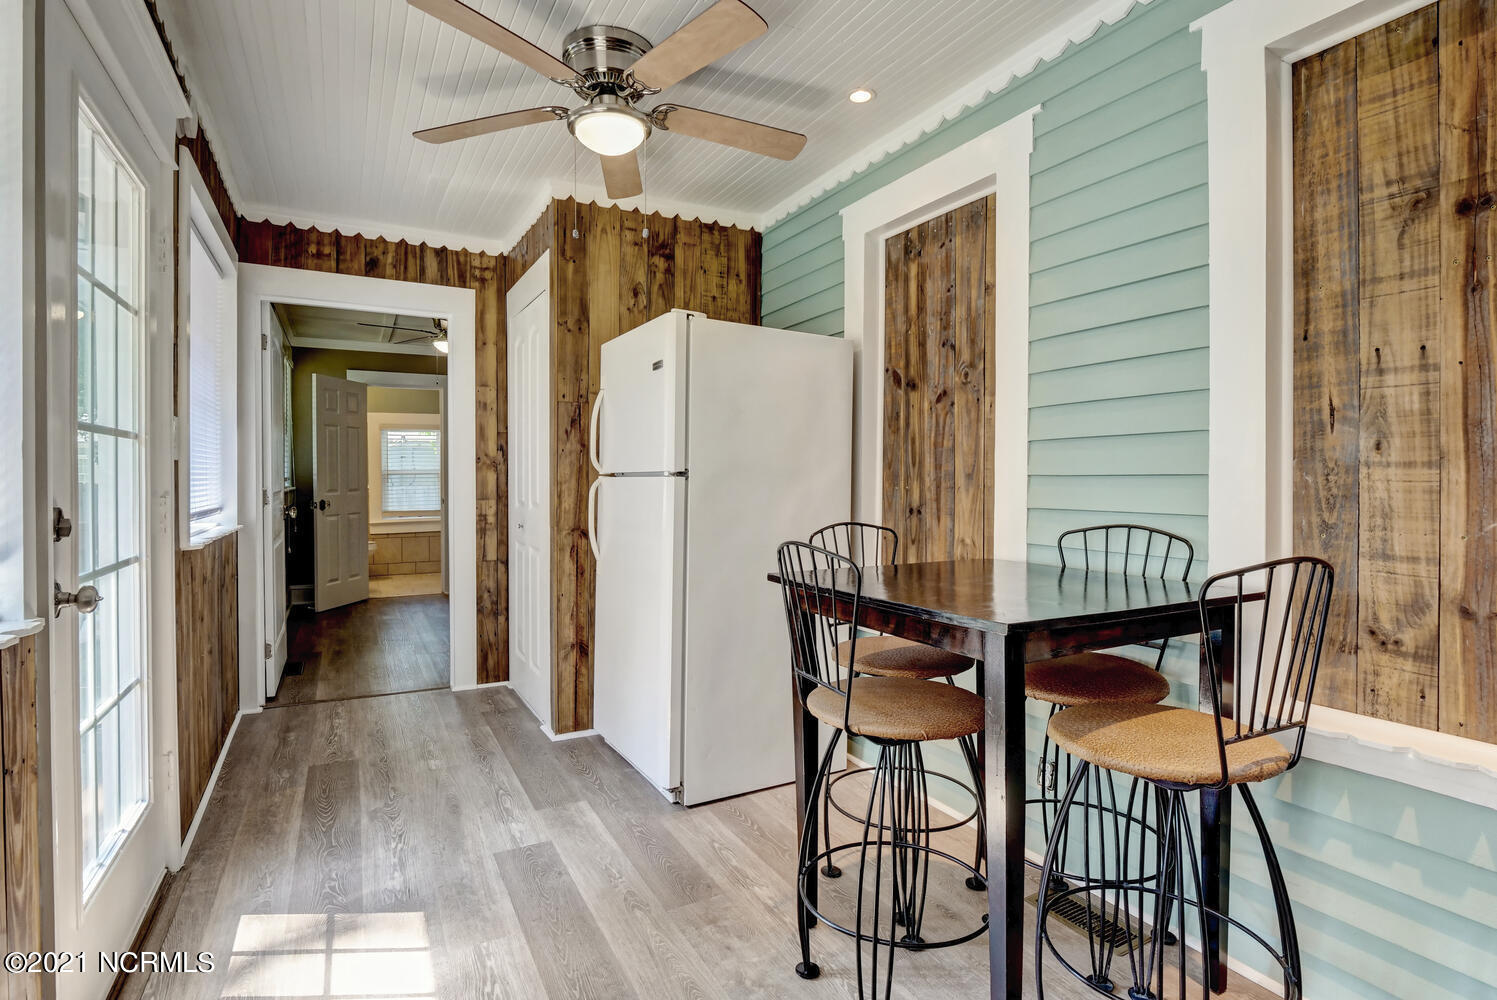 3614 Wrightsville Avenue, Wilmington, North Carolina 28403, 2 Bedrooms Bedrooms, 2 Rooms Rooms,2 BathroomsBathrooms,Single family residence,For sale,Wrightsville,100285764